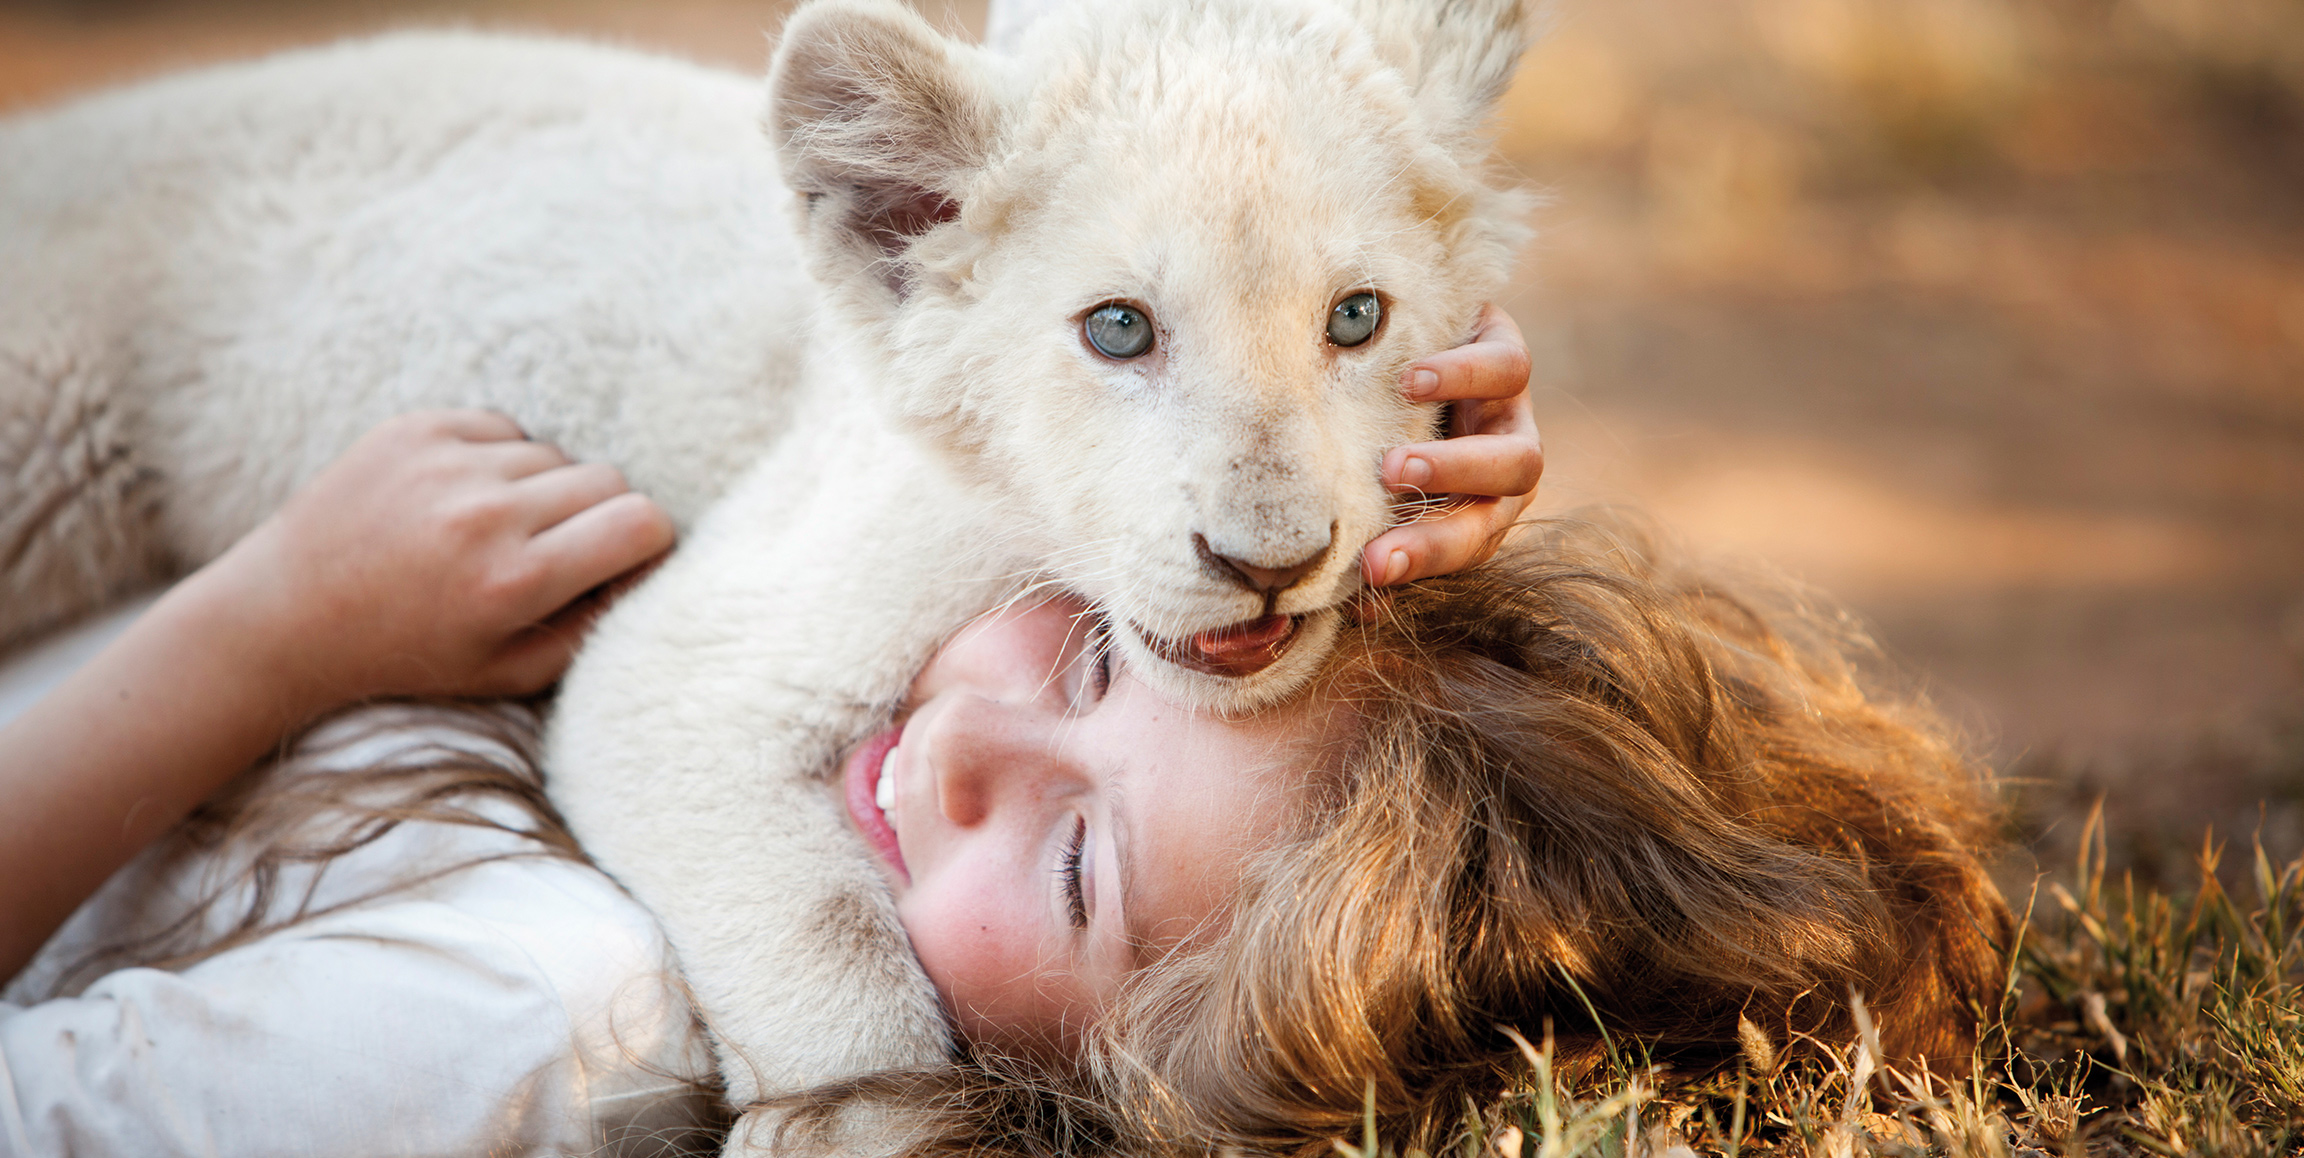 Shout! Studios And Ledafilms Entertainment Group Announce Film Distribution Alliance For Gilles De Maistre's Family Adventure Film MIA AND THE WHITE LION Starring Daniah De Villiers, Mélanie Laurent, Langley Kirkwood, and Ryan Mac Lennan